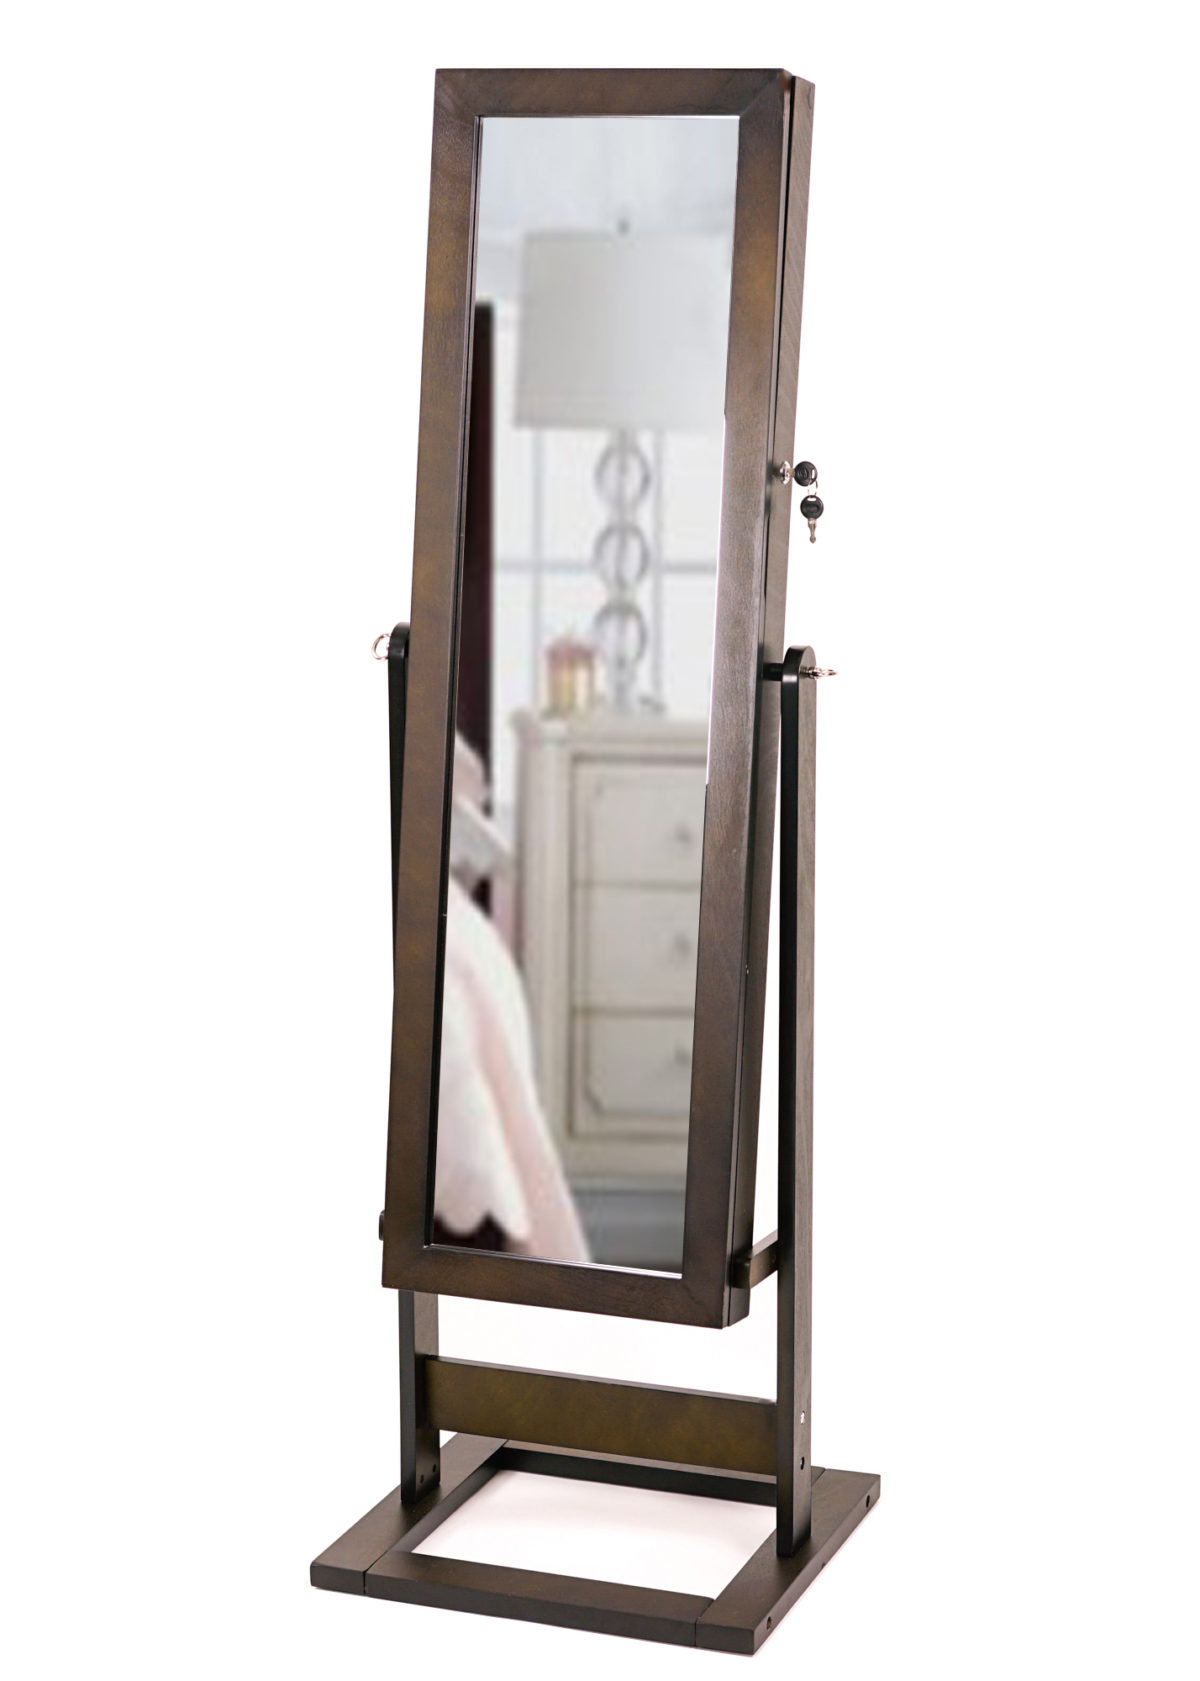 closet most holder armoire for matchless standing storage mirrored with jewellery cabinet jewelry free mirror floor wall